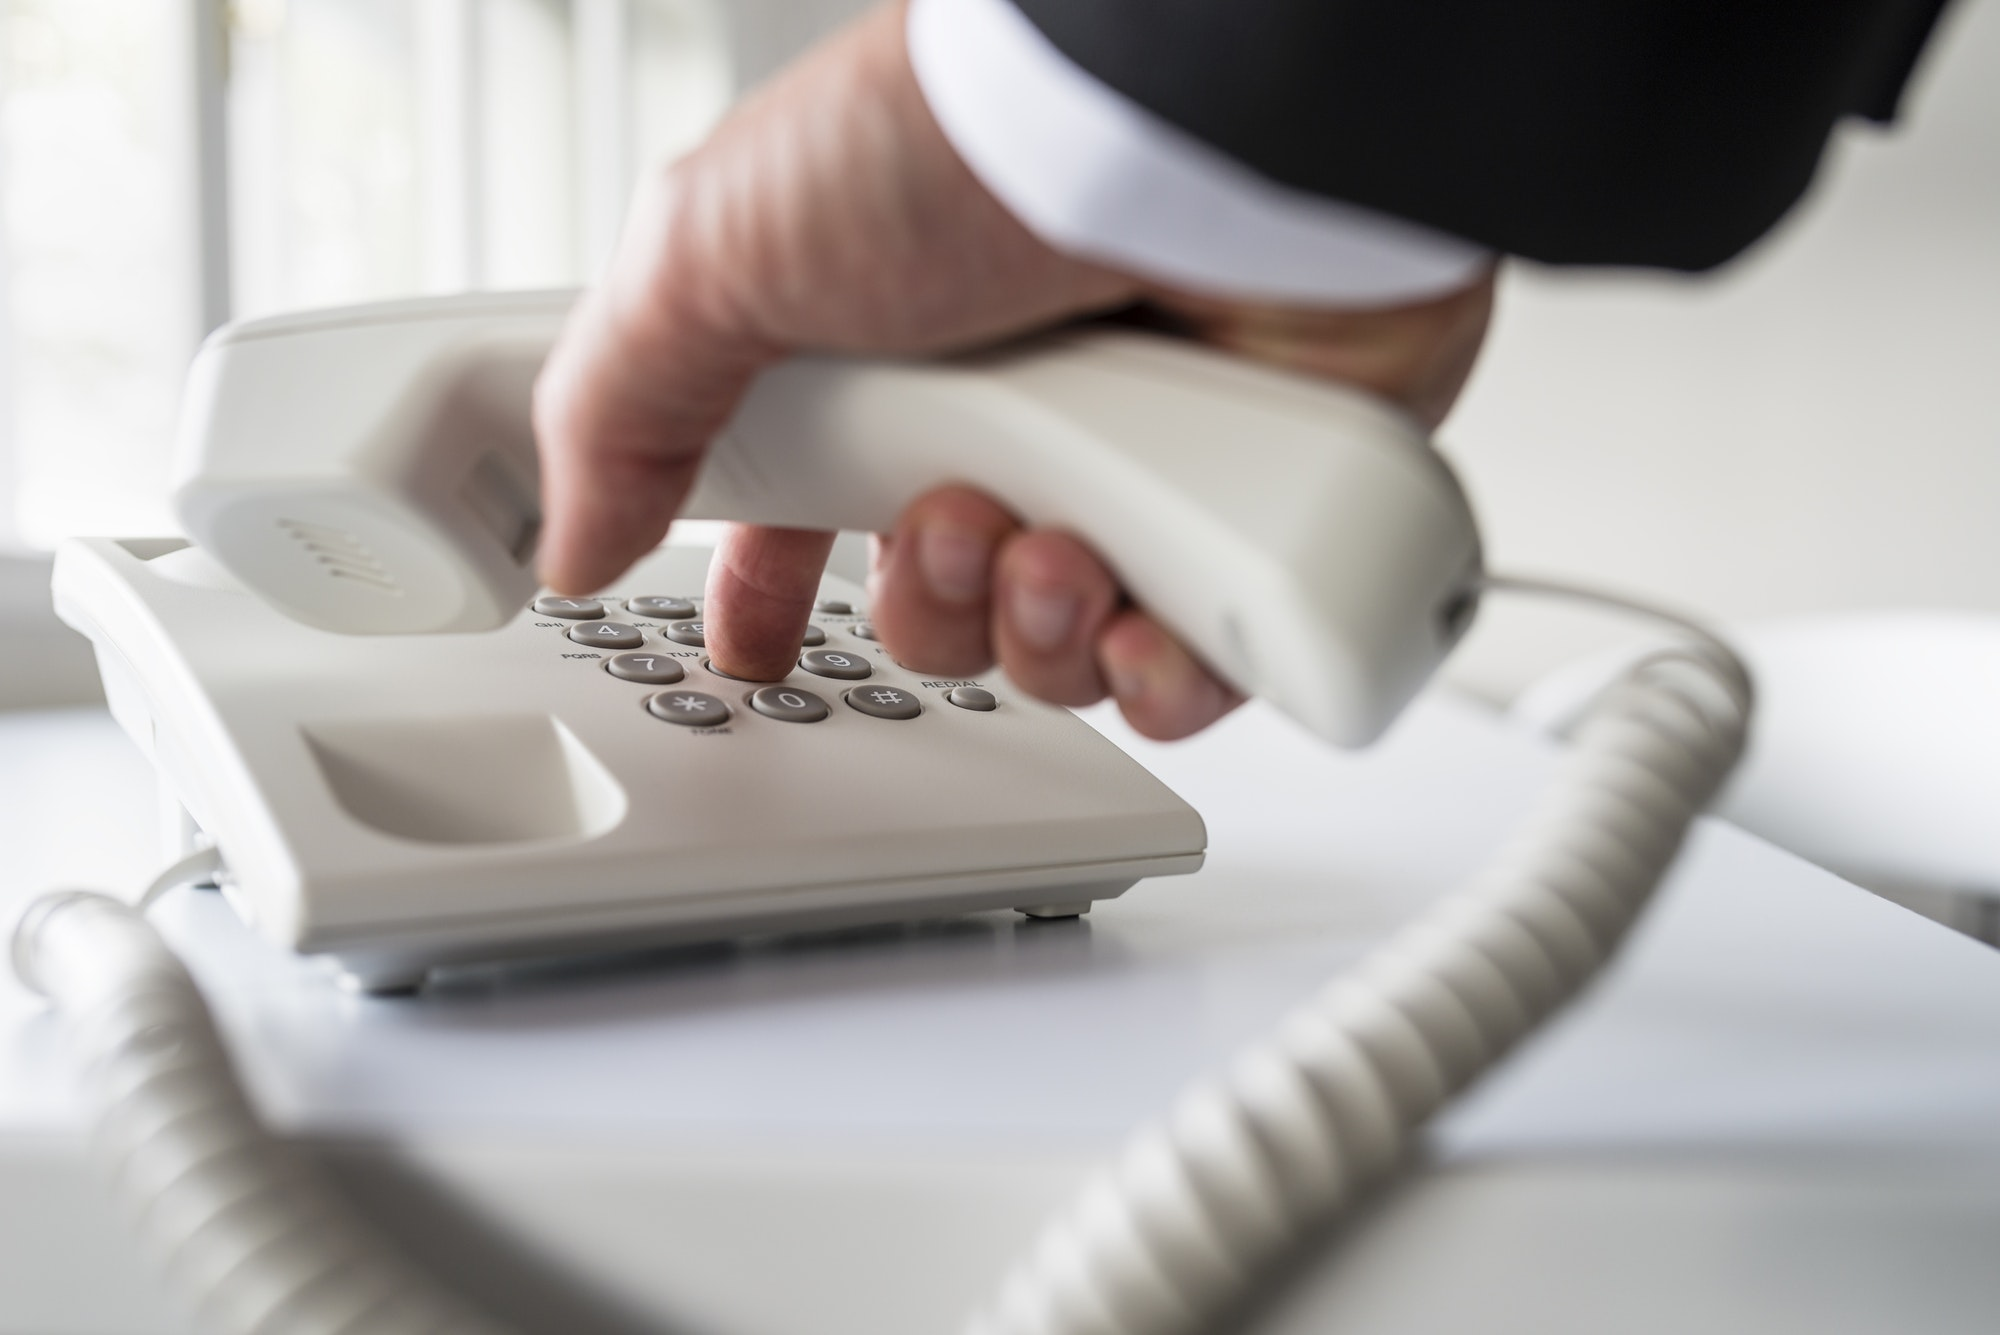 Businessman dialing a telephone number